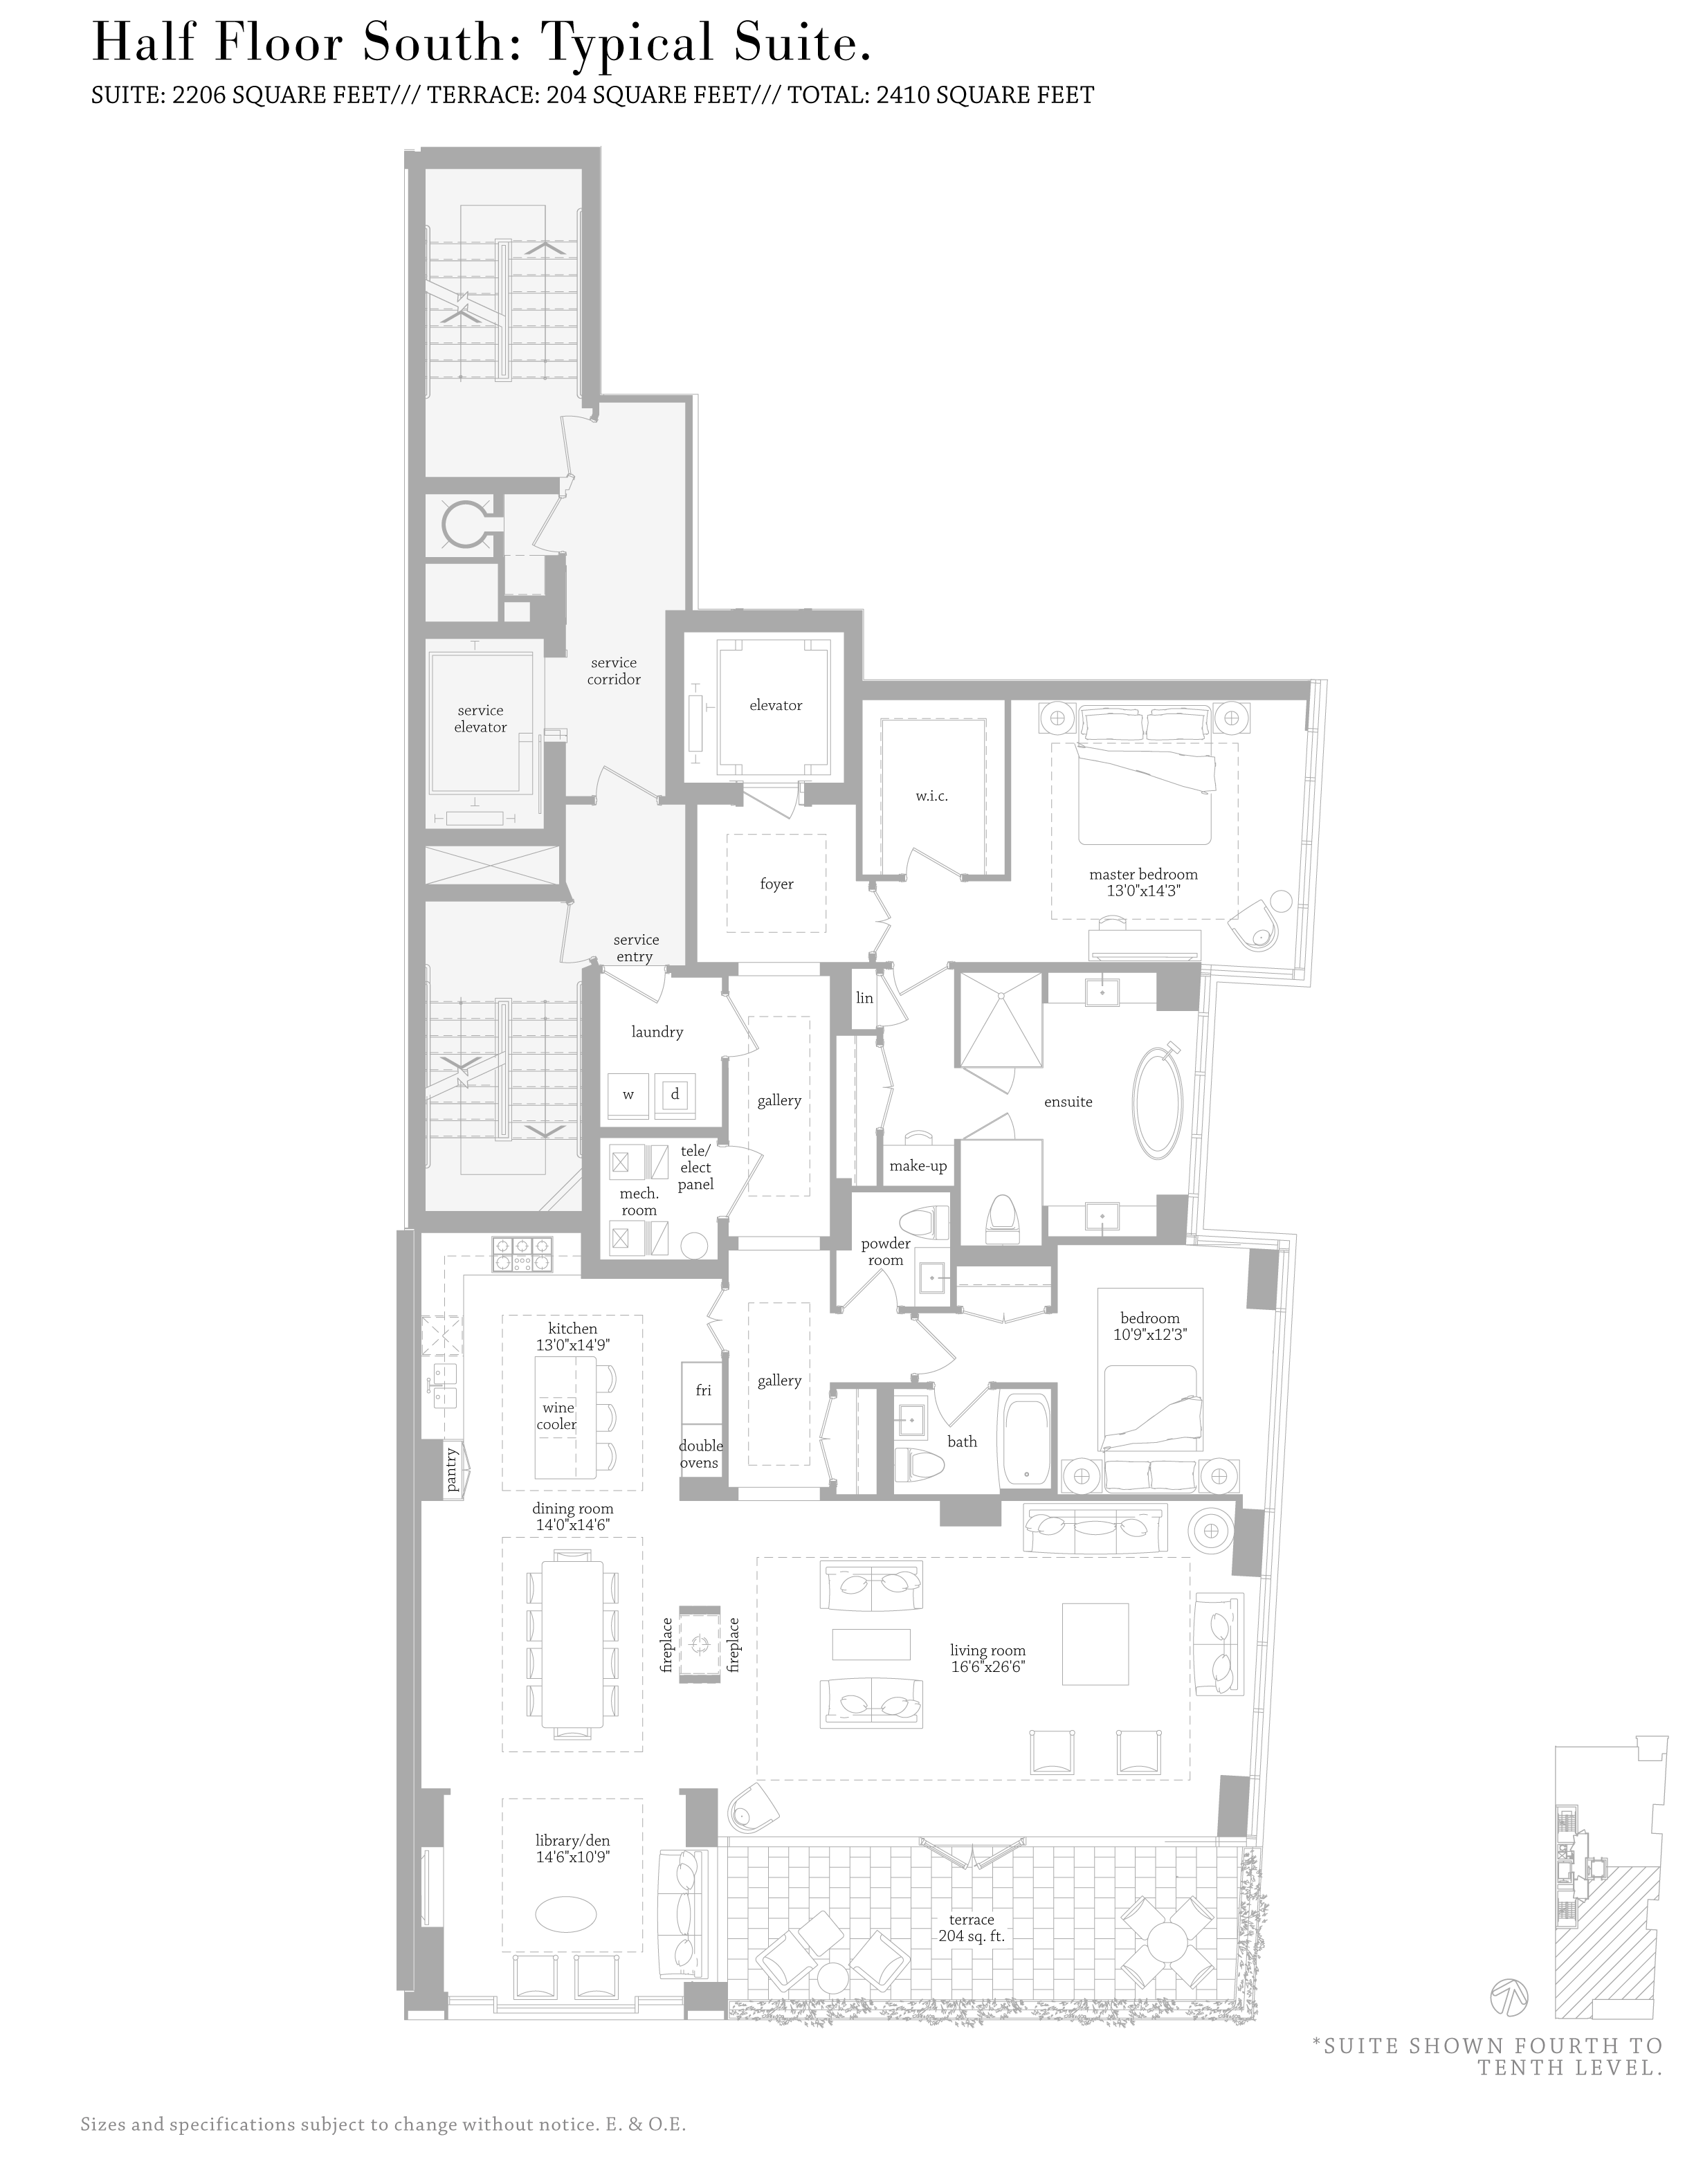 MUSEUM HOUSE FLOORPLANS - HALF FLOOR 2,200 SQ FT